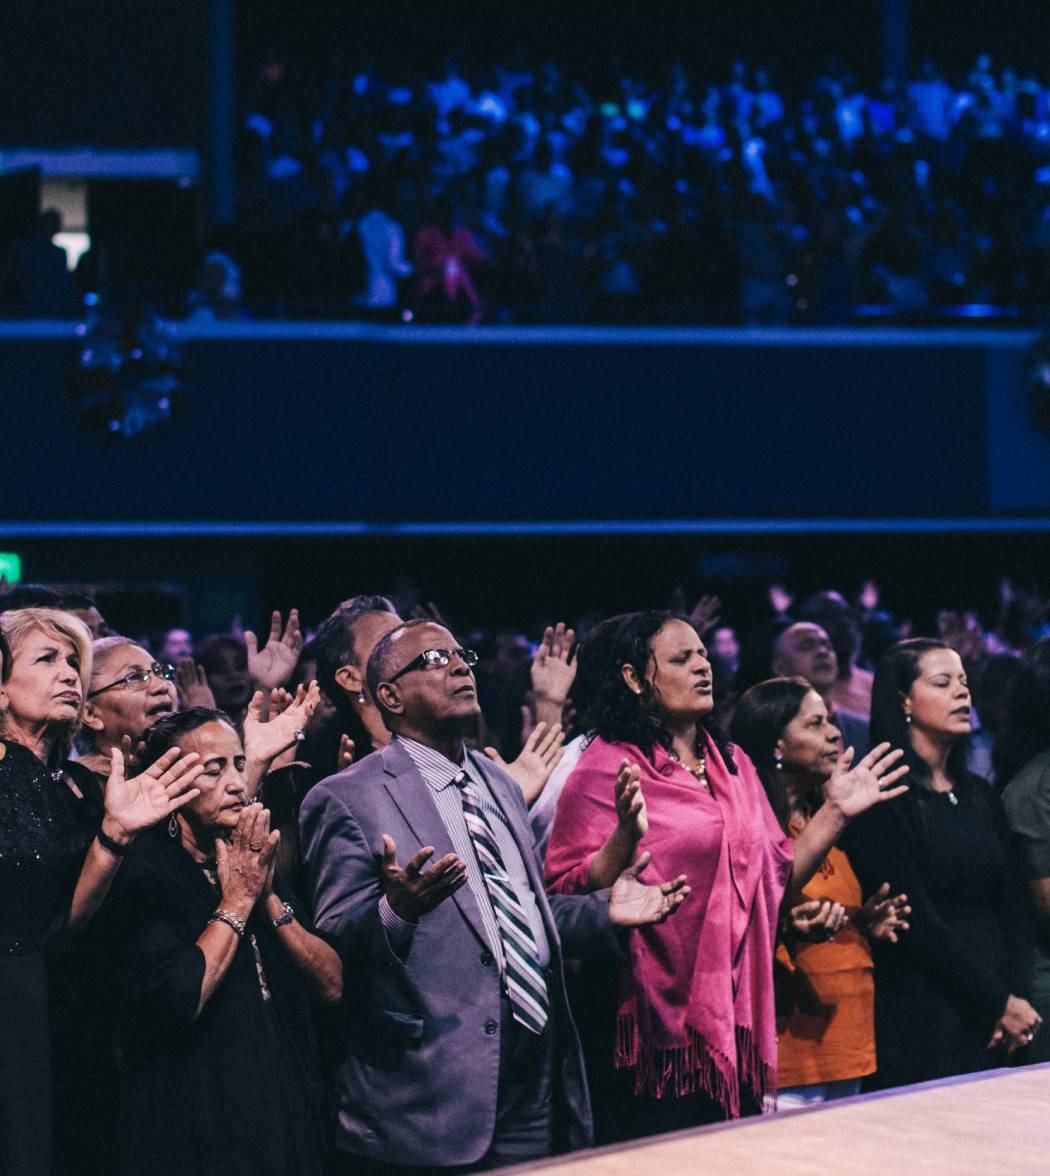 Worship service at a mega church